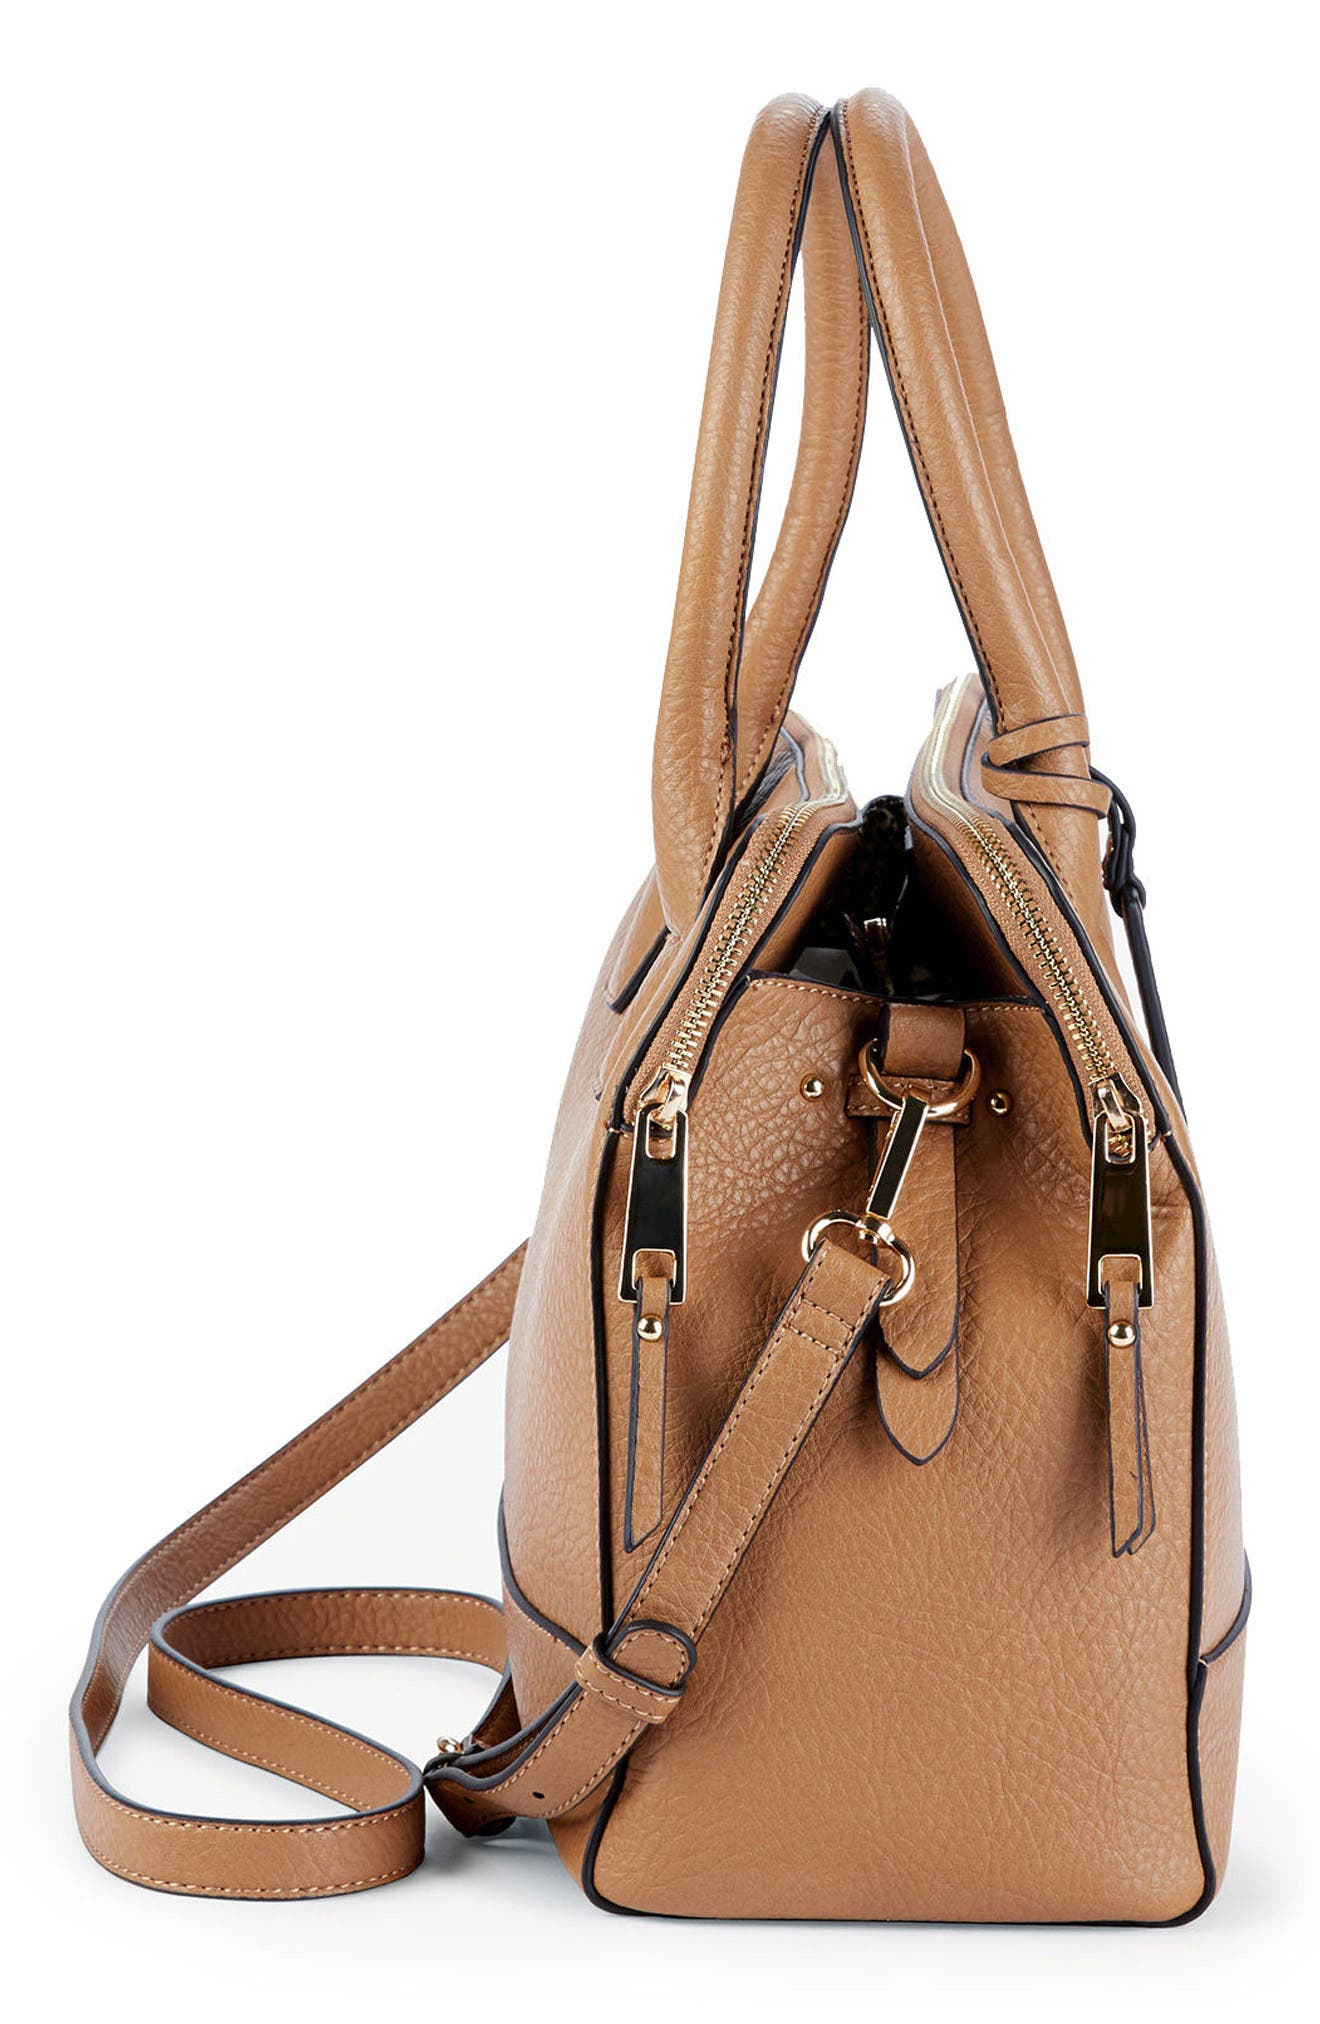 Nera Faux Leather Satchel,                             Alternate thumbnail 4, color,                             230